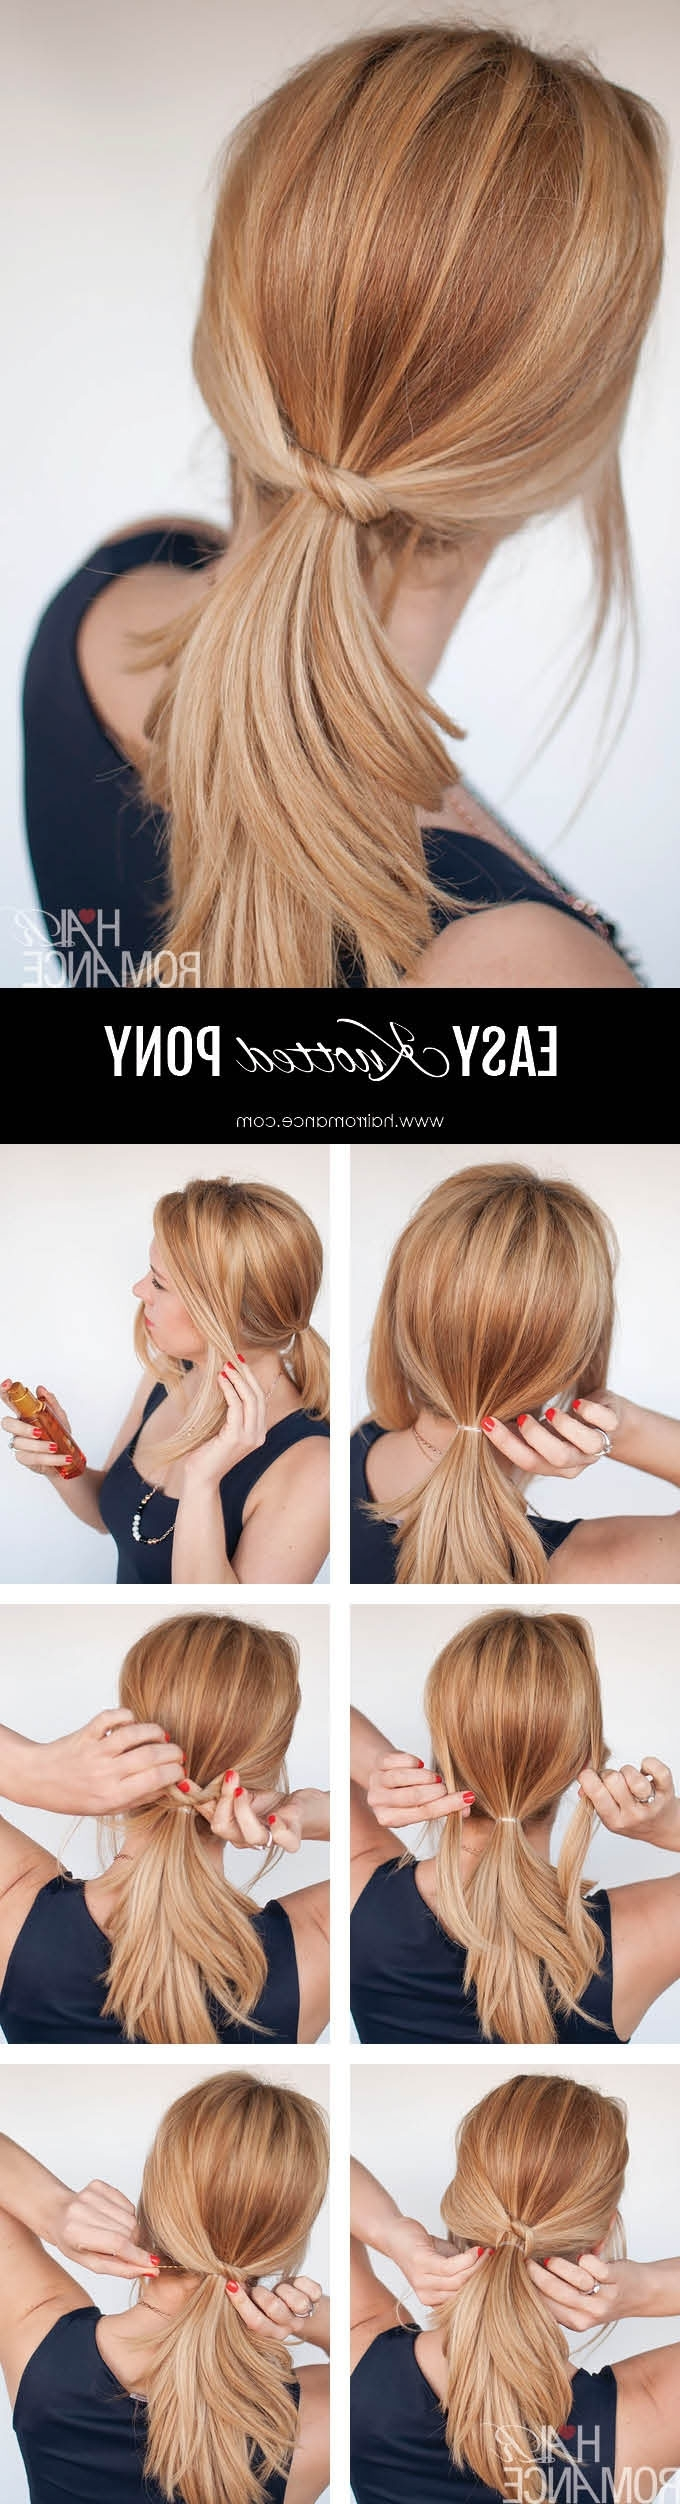 Trendy Knotted Ponytail Hairstyles For 3 Chic Ponytail Tutorials To Lift Your Everyday Hair Game – Hair Romance (View 11 of 20)